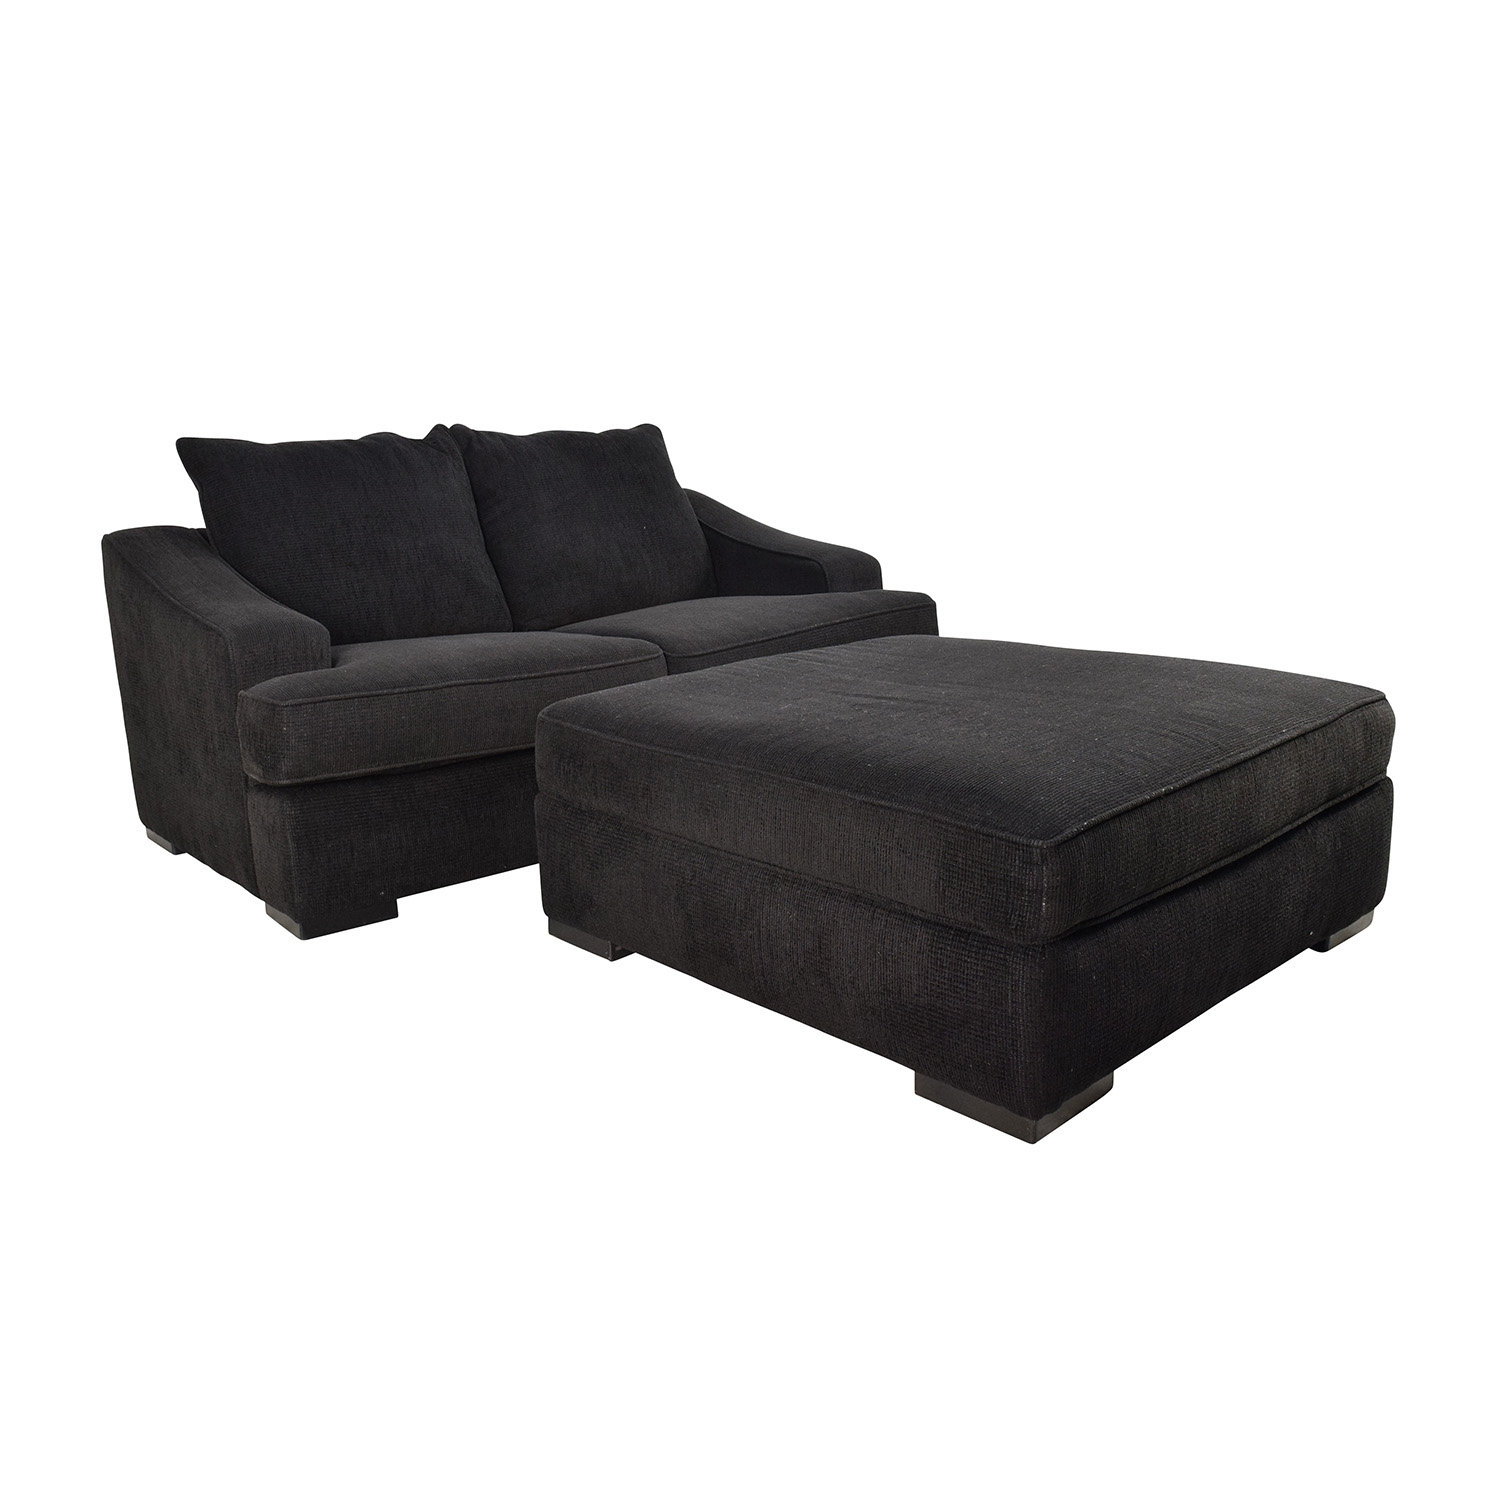 67% Off - Black Cloth Loveseat And Matching Oversized Ottoman / Sofas with Loveseats With Ottoman (Image 2 of 15)